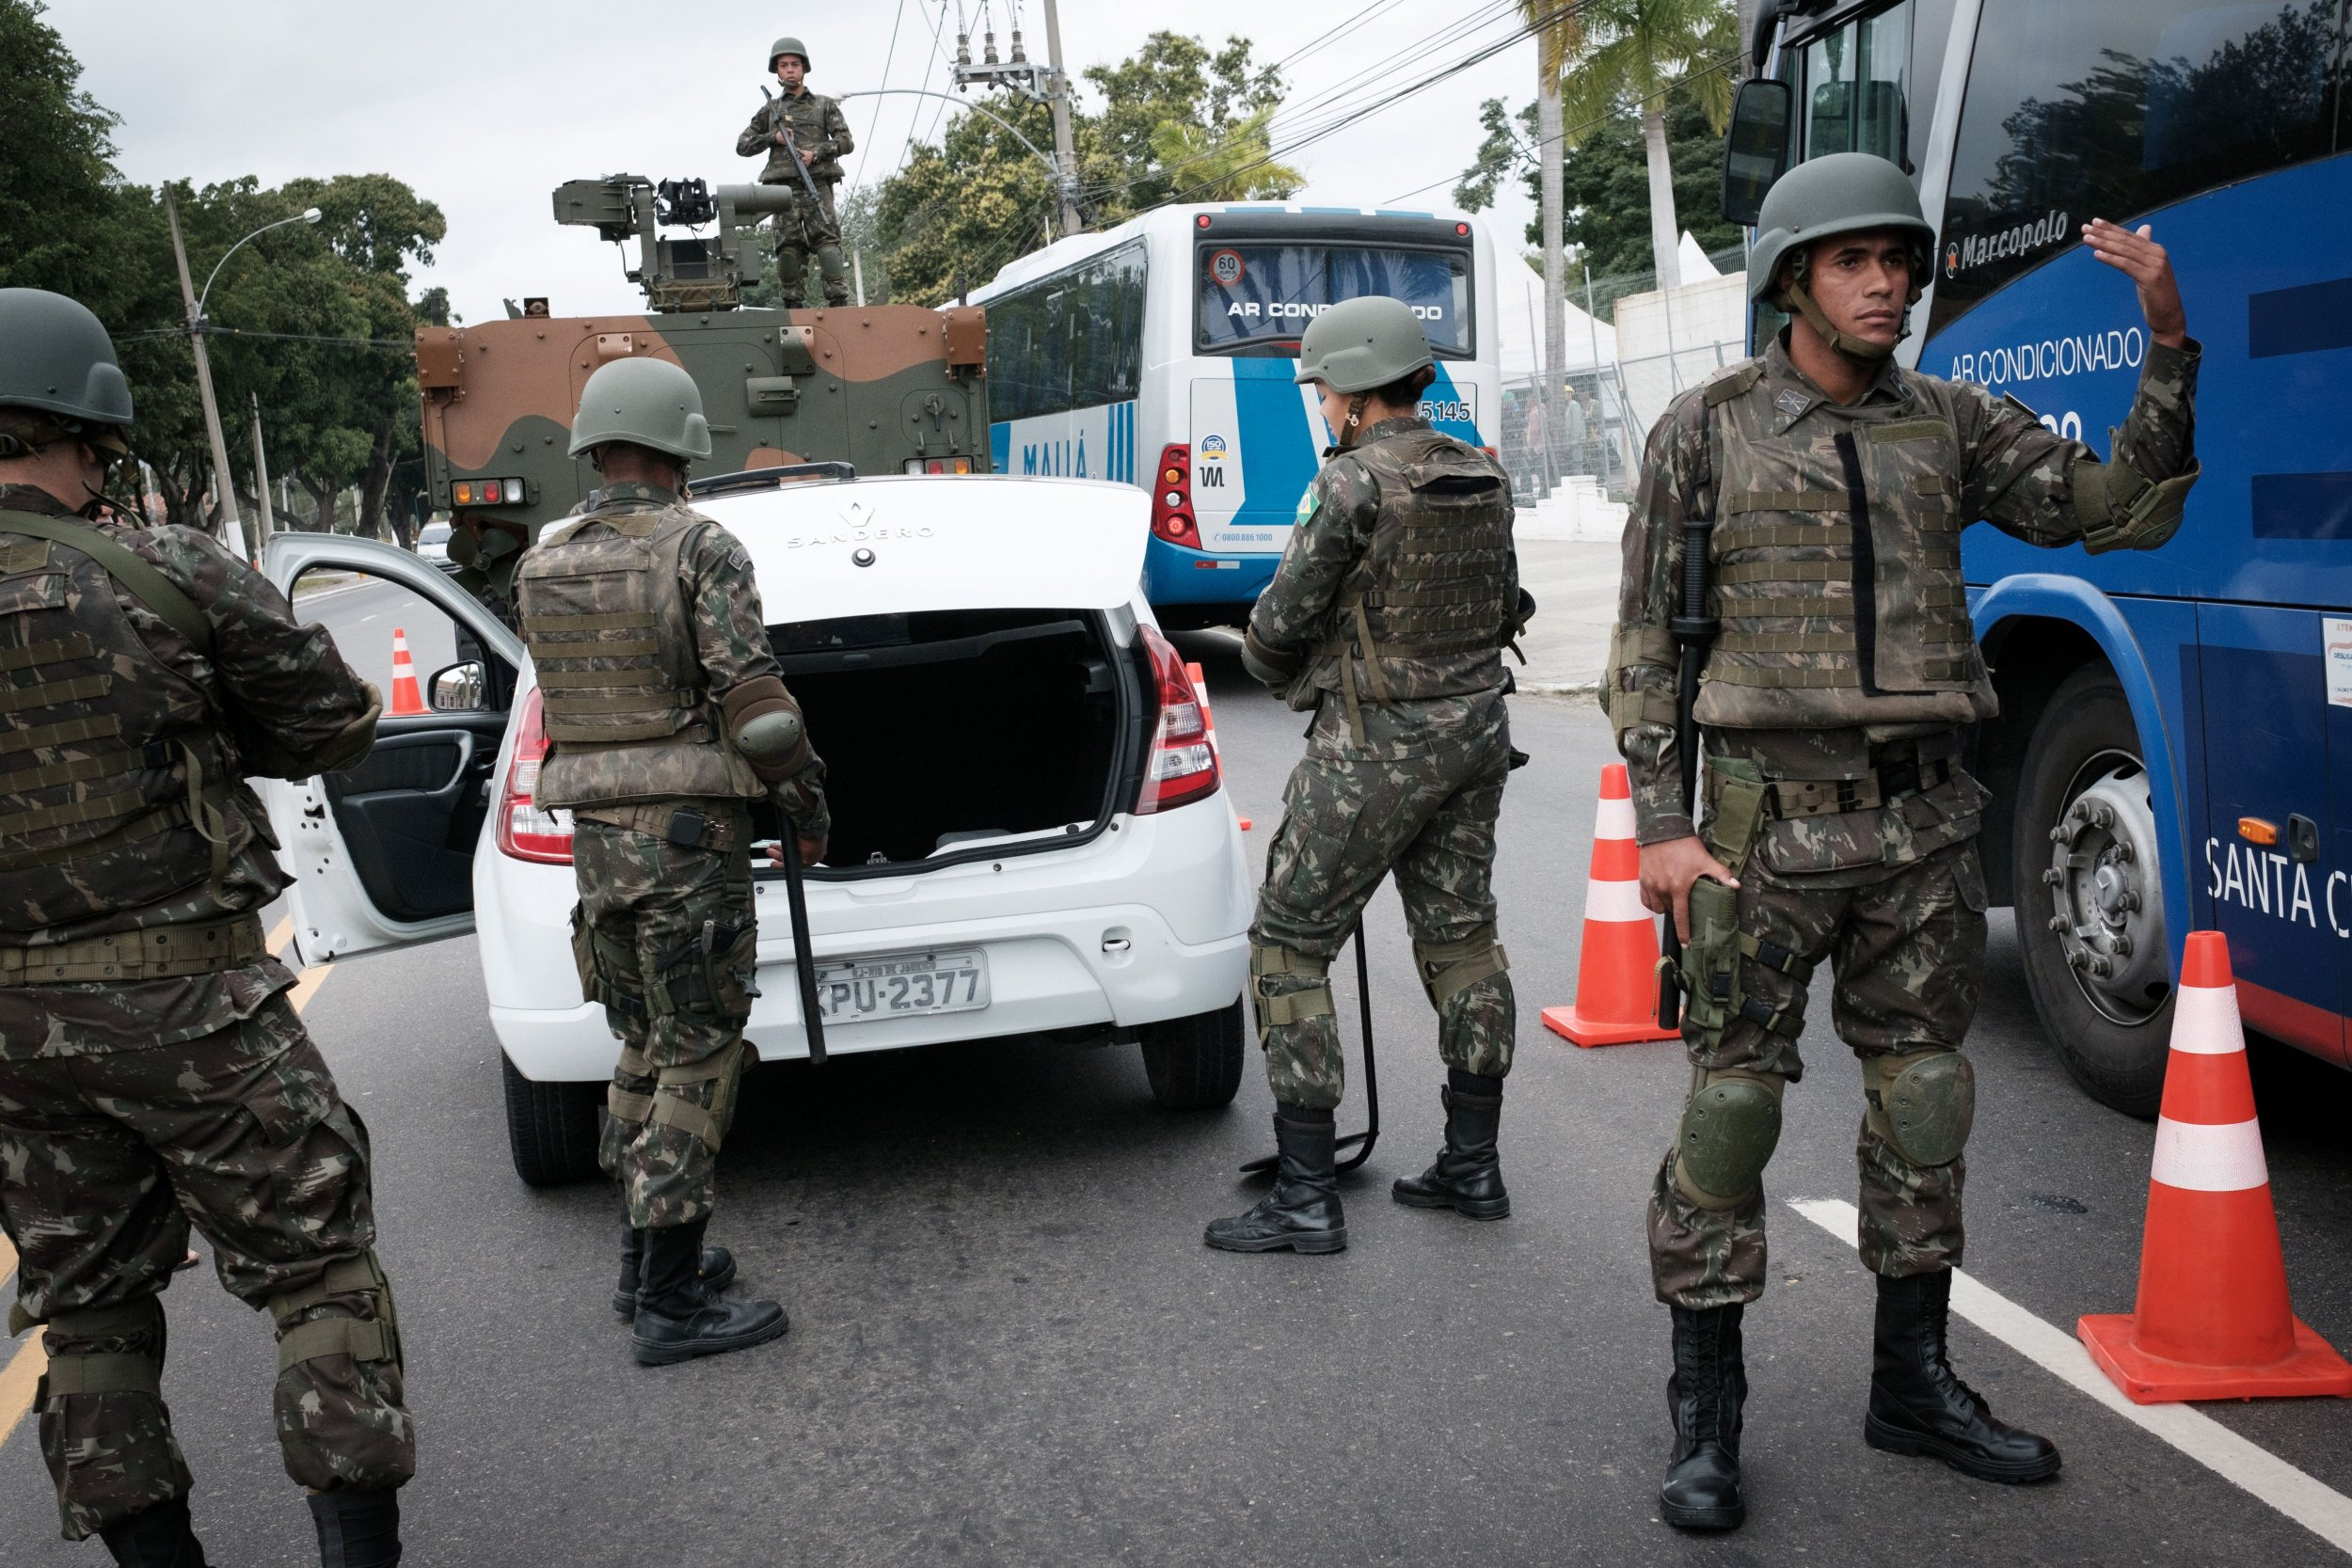 Security forces ahead of Rio 2016 Olympics in Brazil